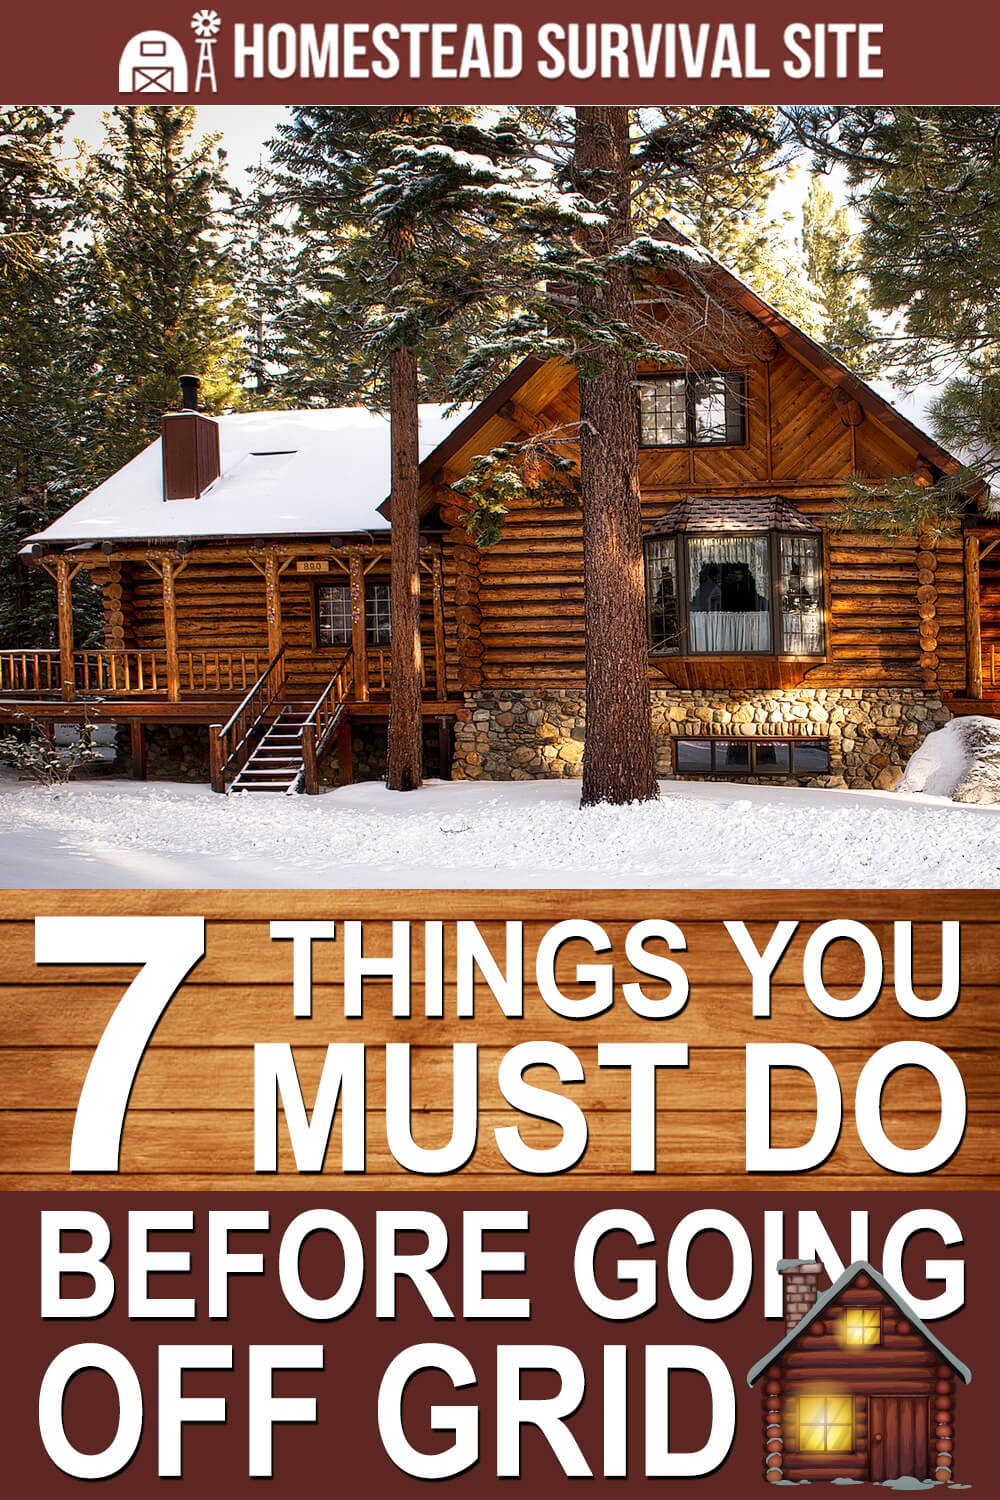 7 Things You Must Do Before Going Off Grid